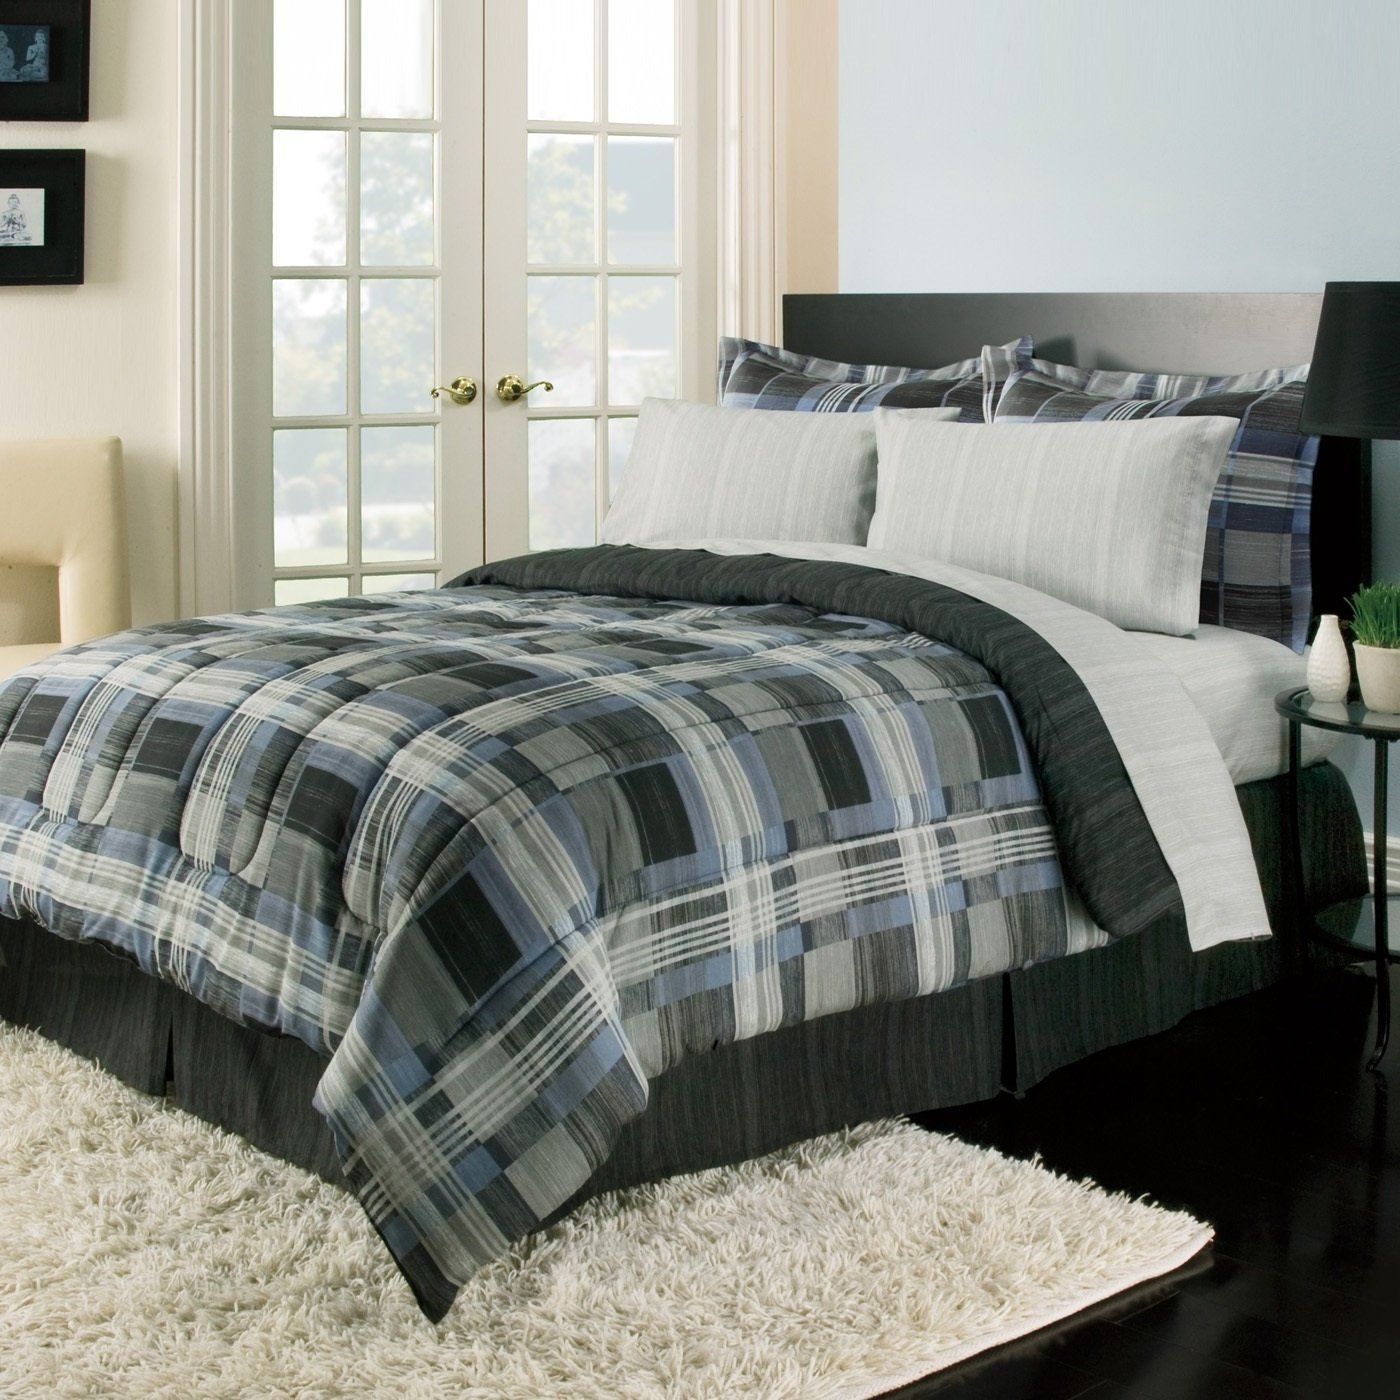 with red black also stunning sets skirt and design bedroom for headboard wooden plaid bedside comforter modern table decoration bed